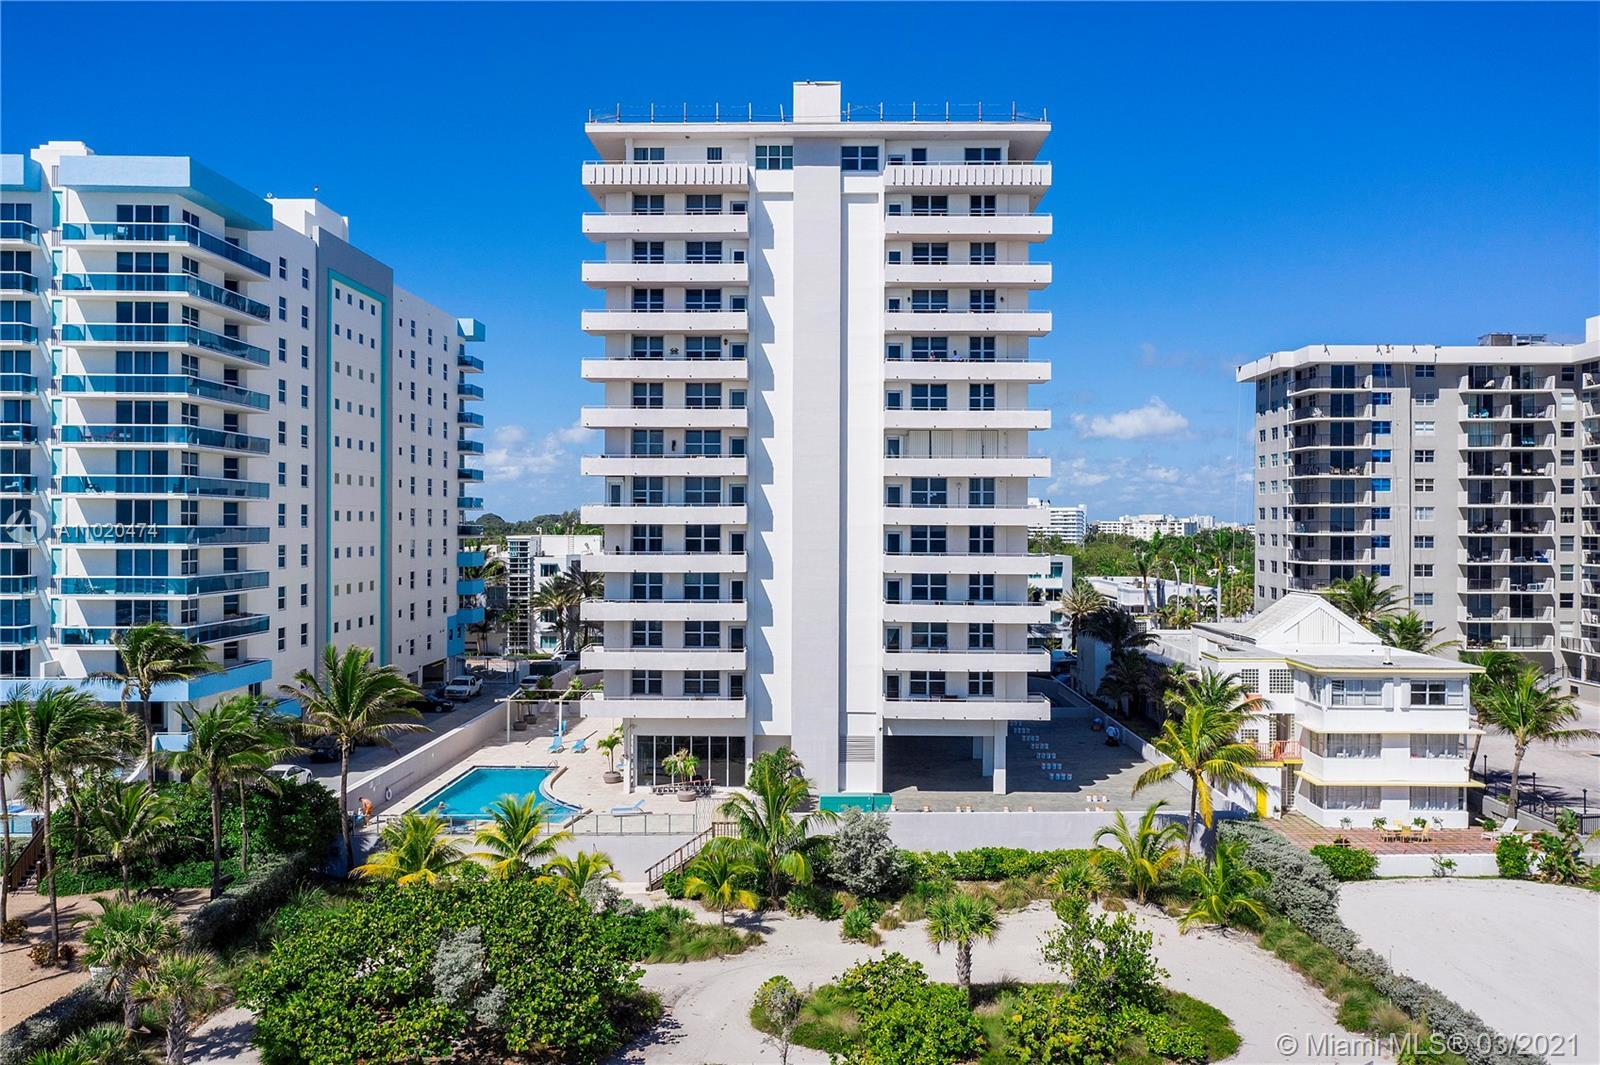 Welcome to the lovely Four Winds Condominium located in the popular beach town of Surfside, FL. Curr